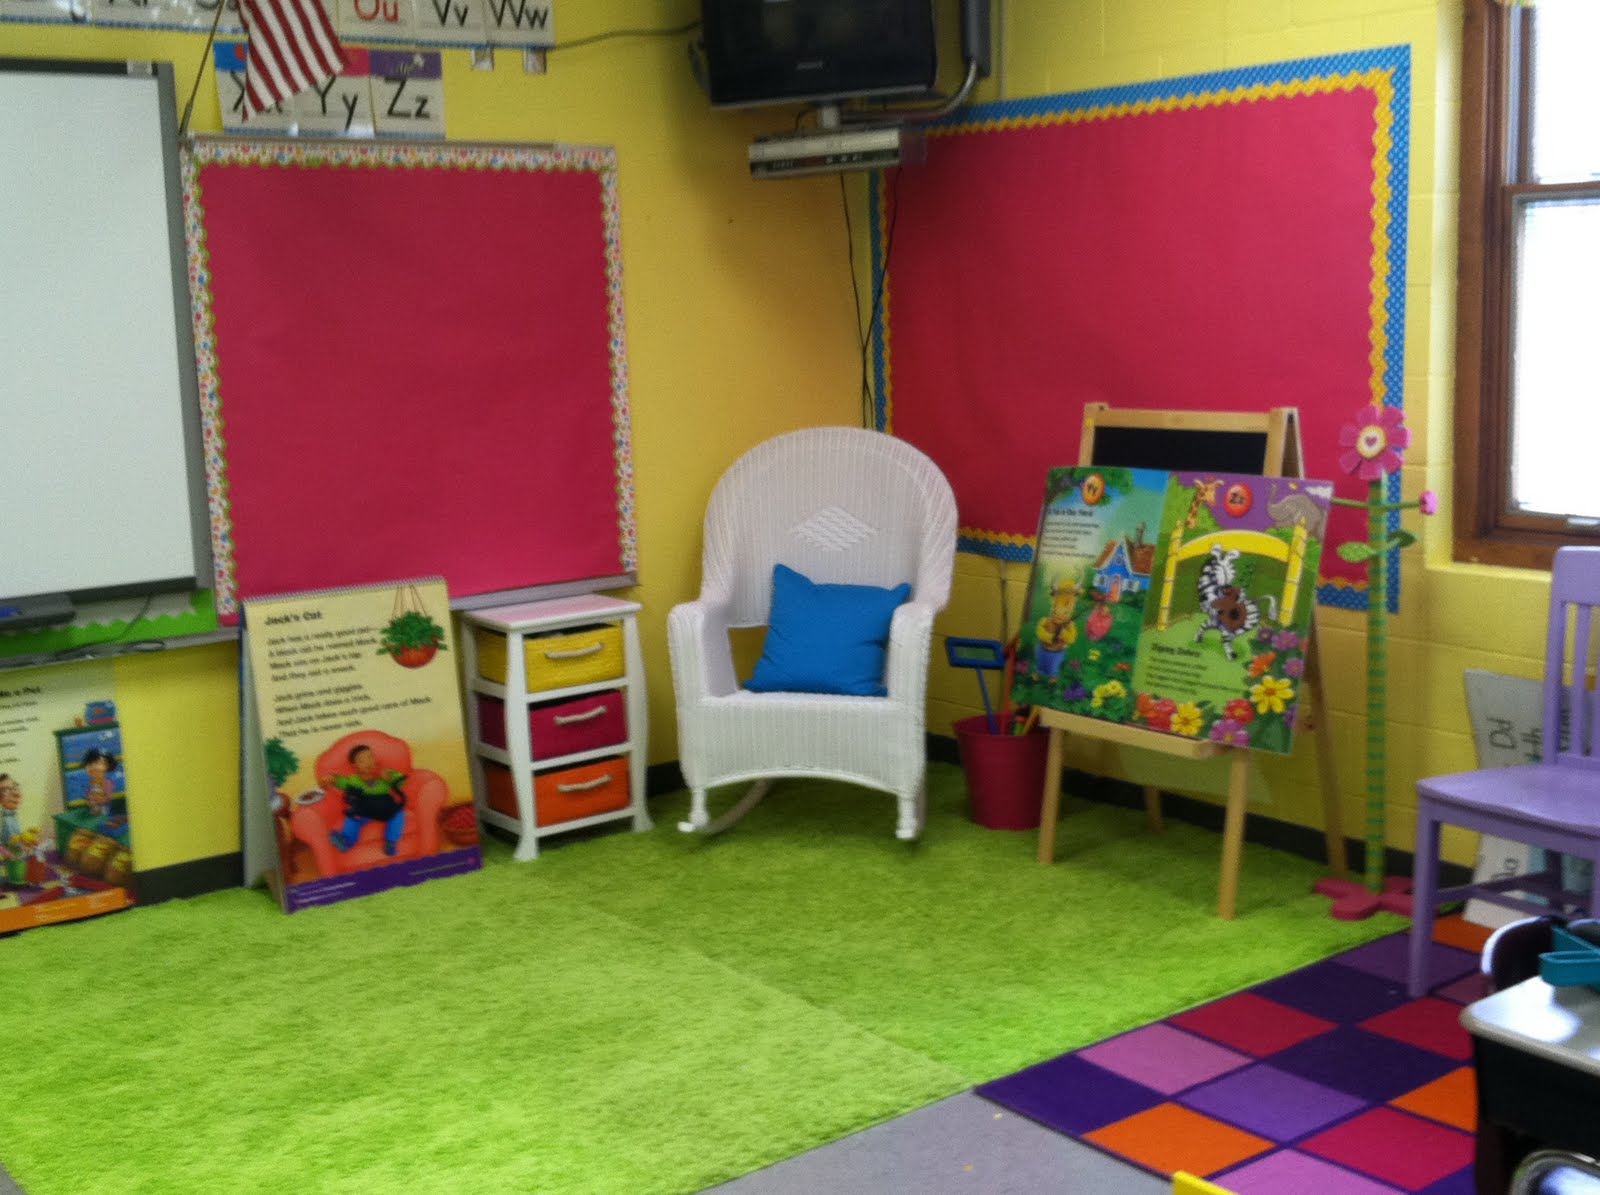 Classroom Decor Pics ~ Classroom decorating ideas dream house experience